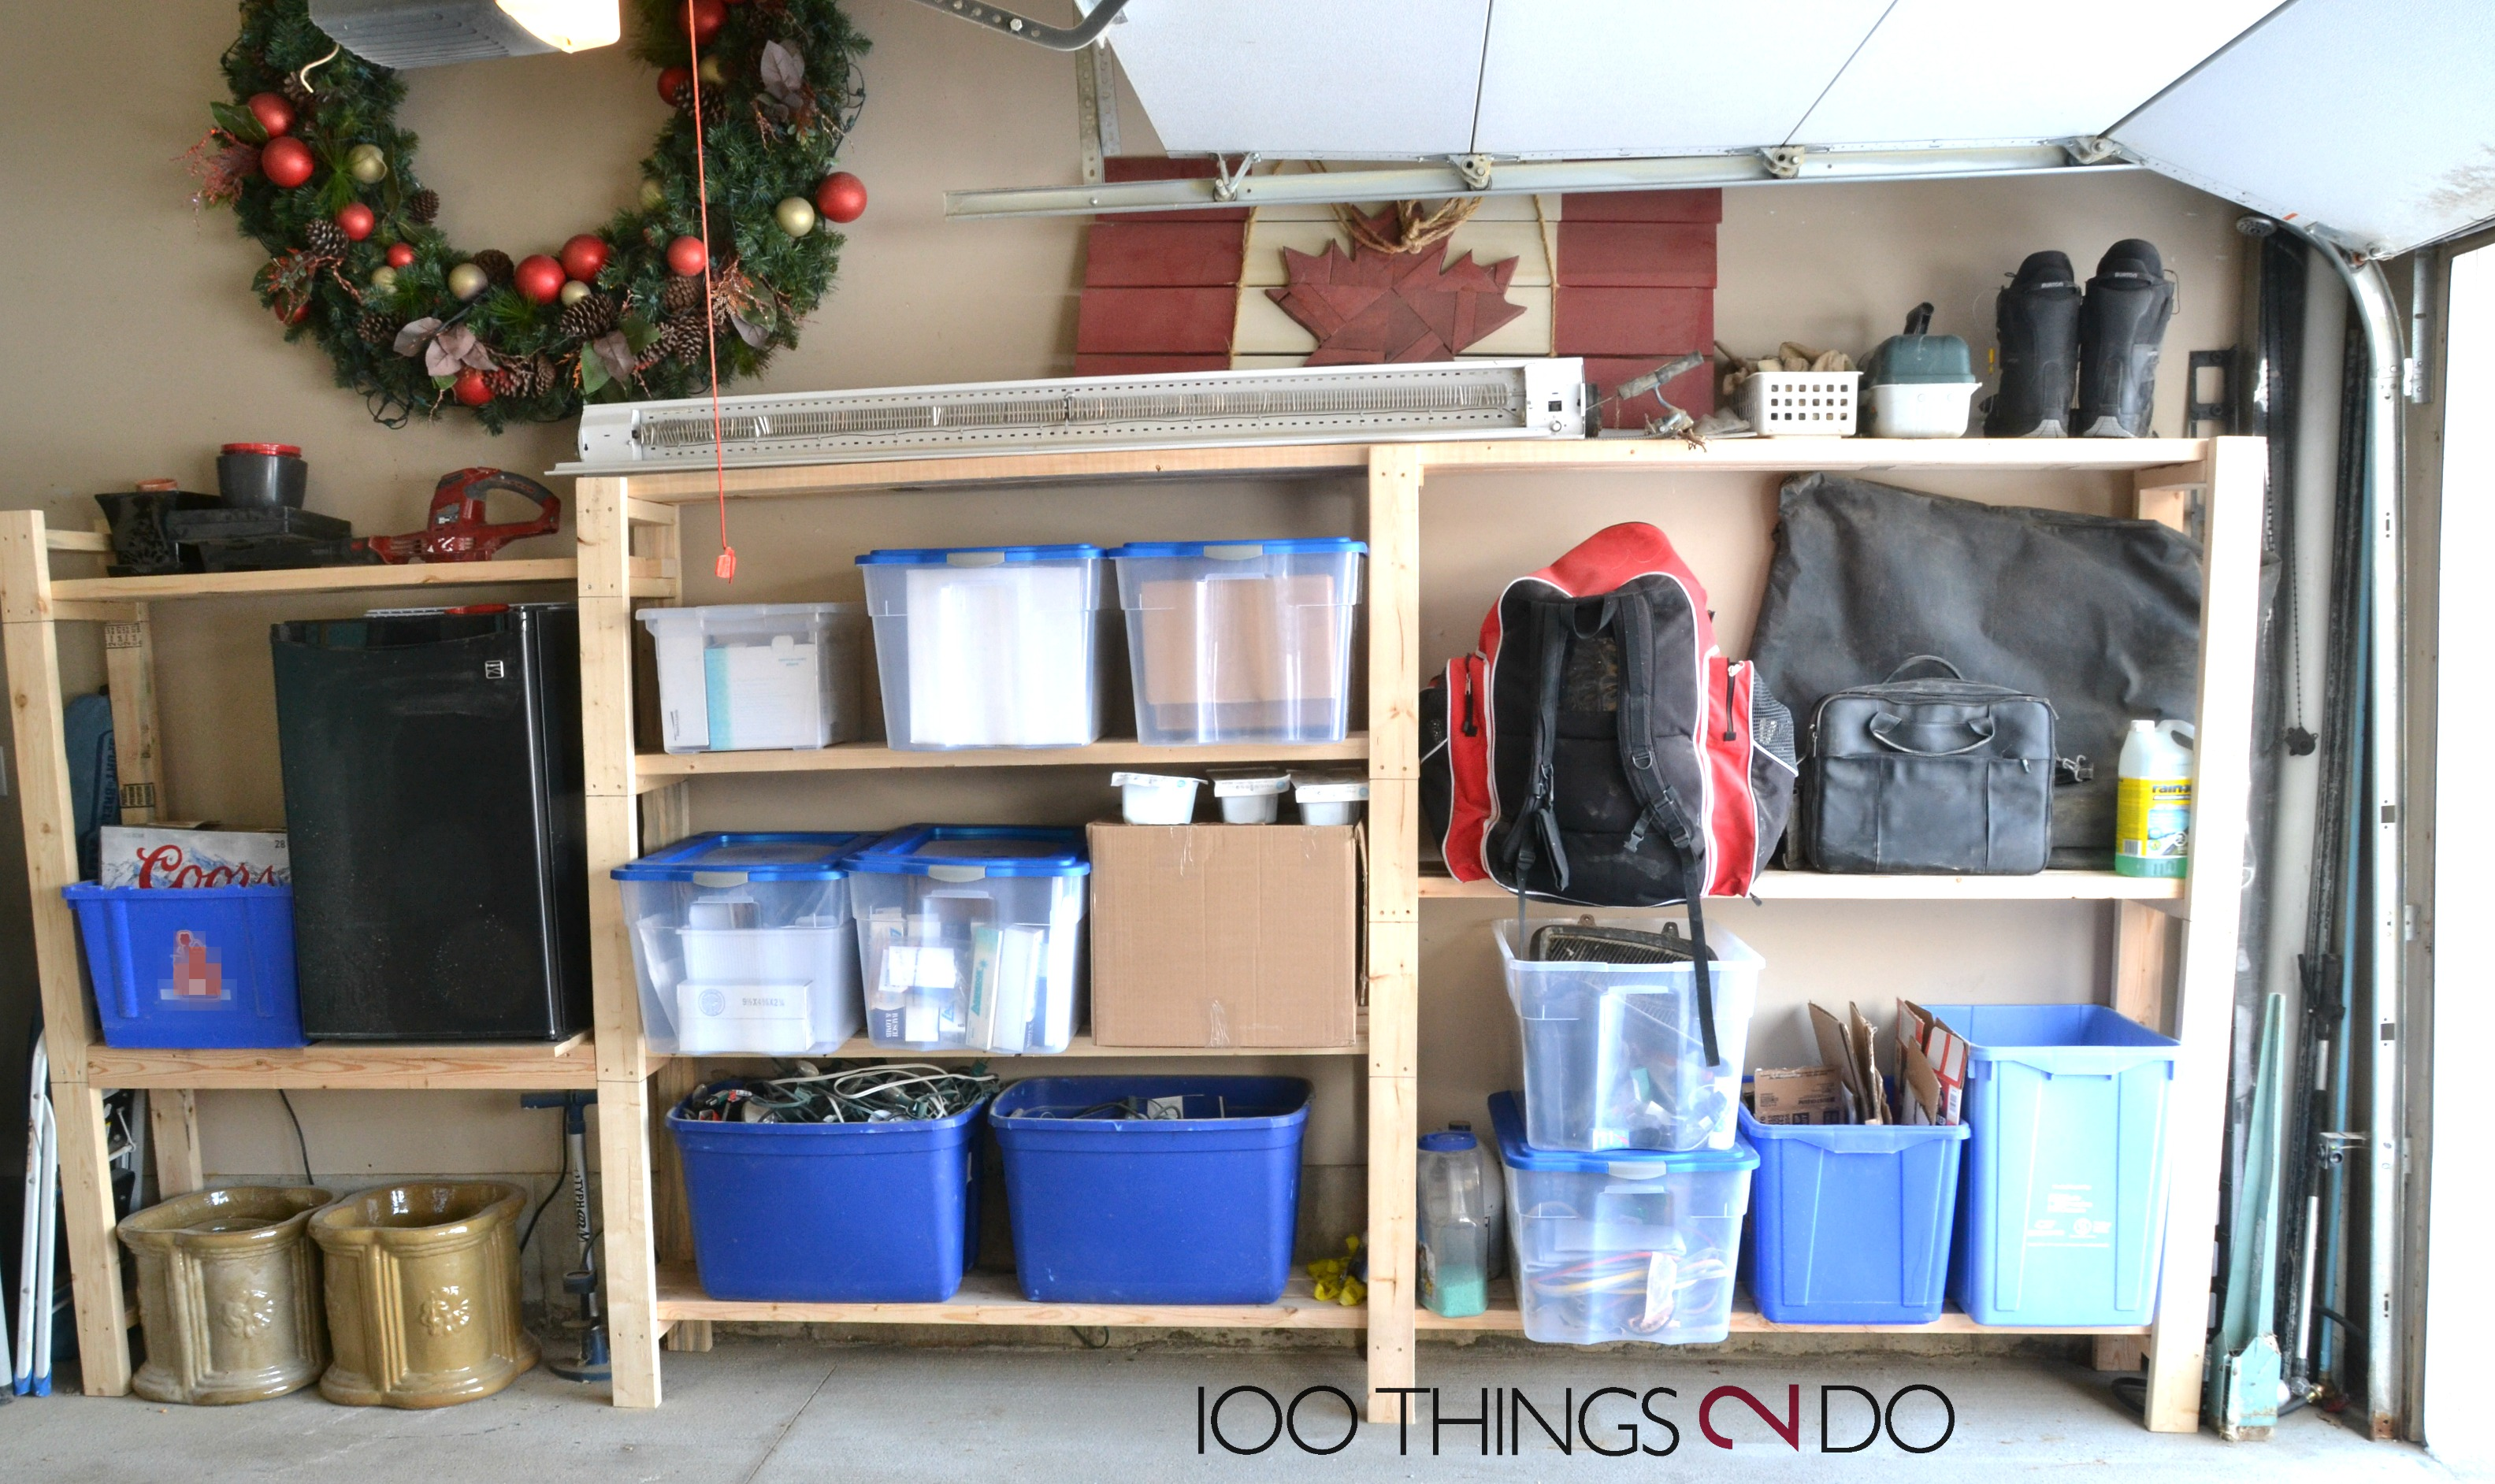 for size track system systems lowes cabinets gladiator of hooks cadet wall storage garage full duty shelving heavy organizer ideas racks